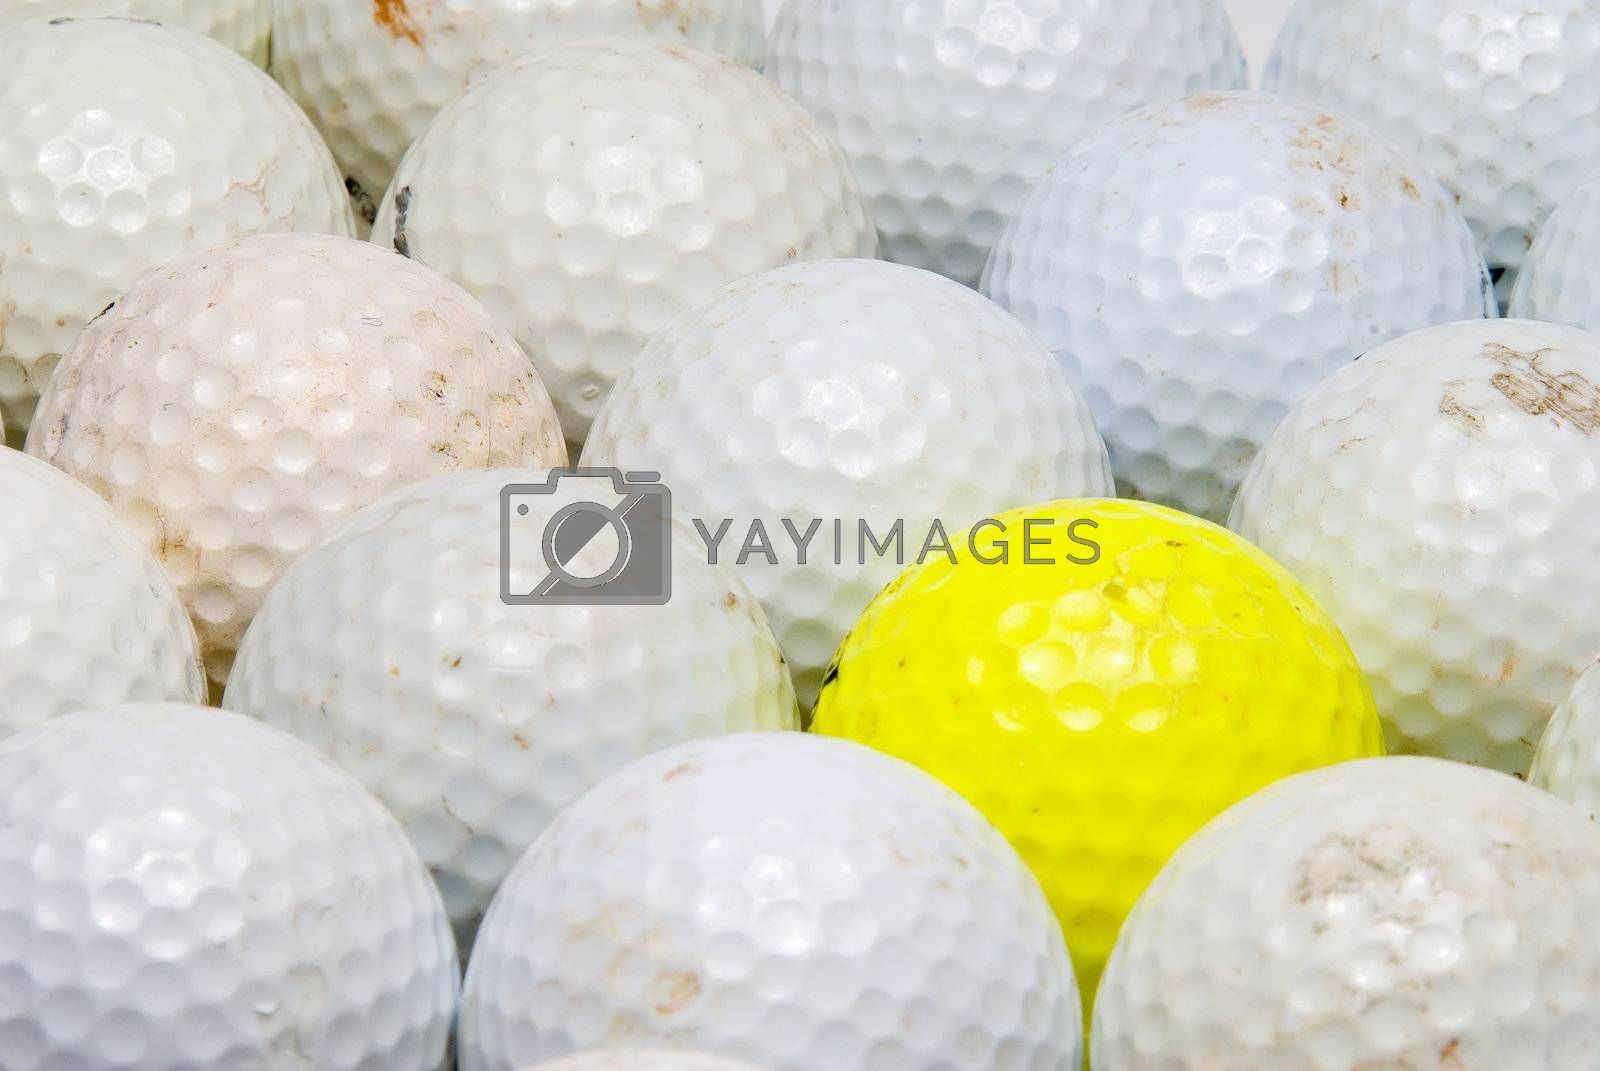 A yellow golf ball in the middle of white balls.